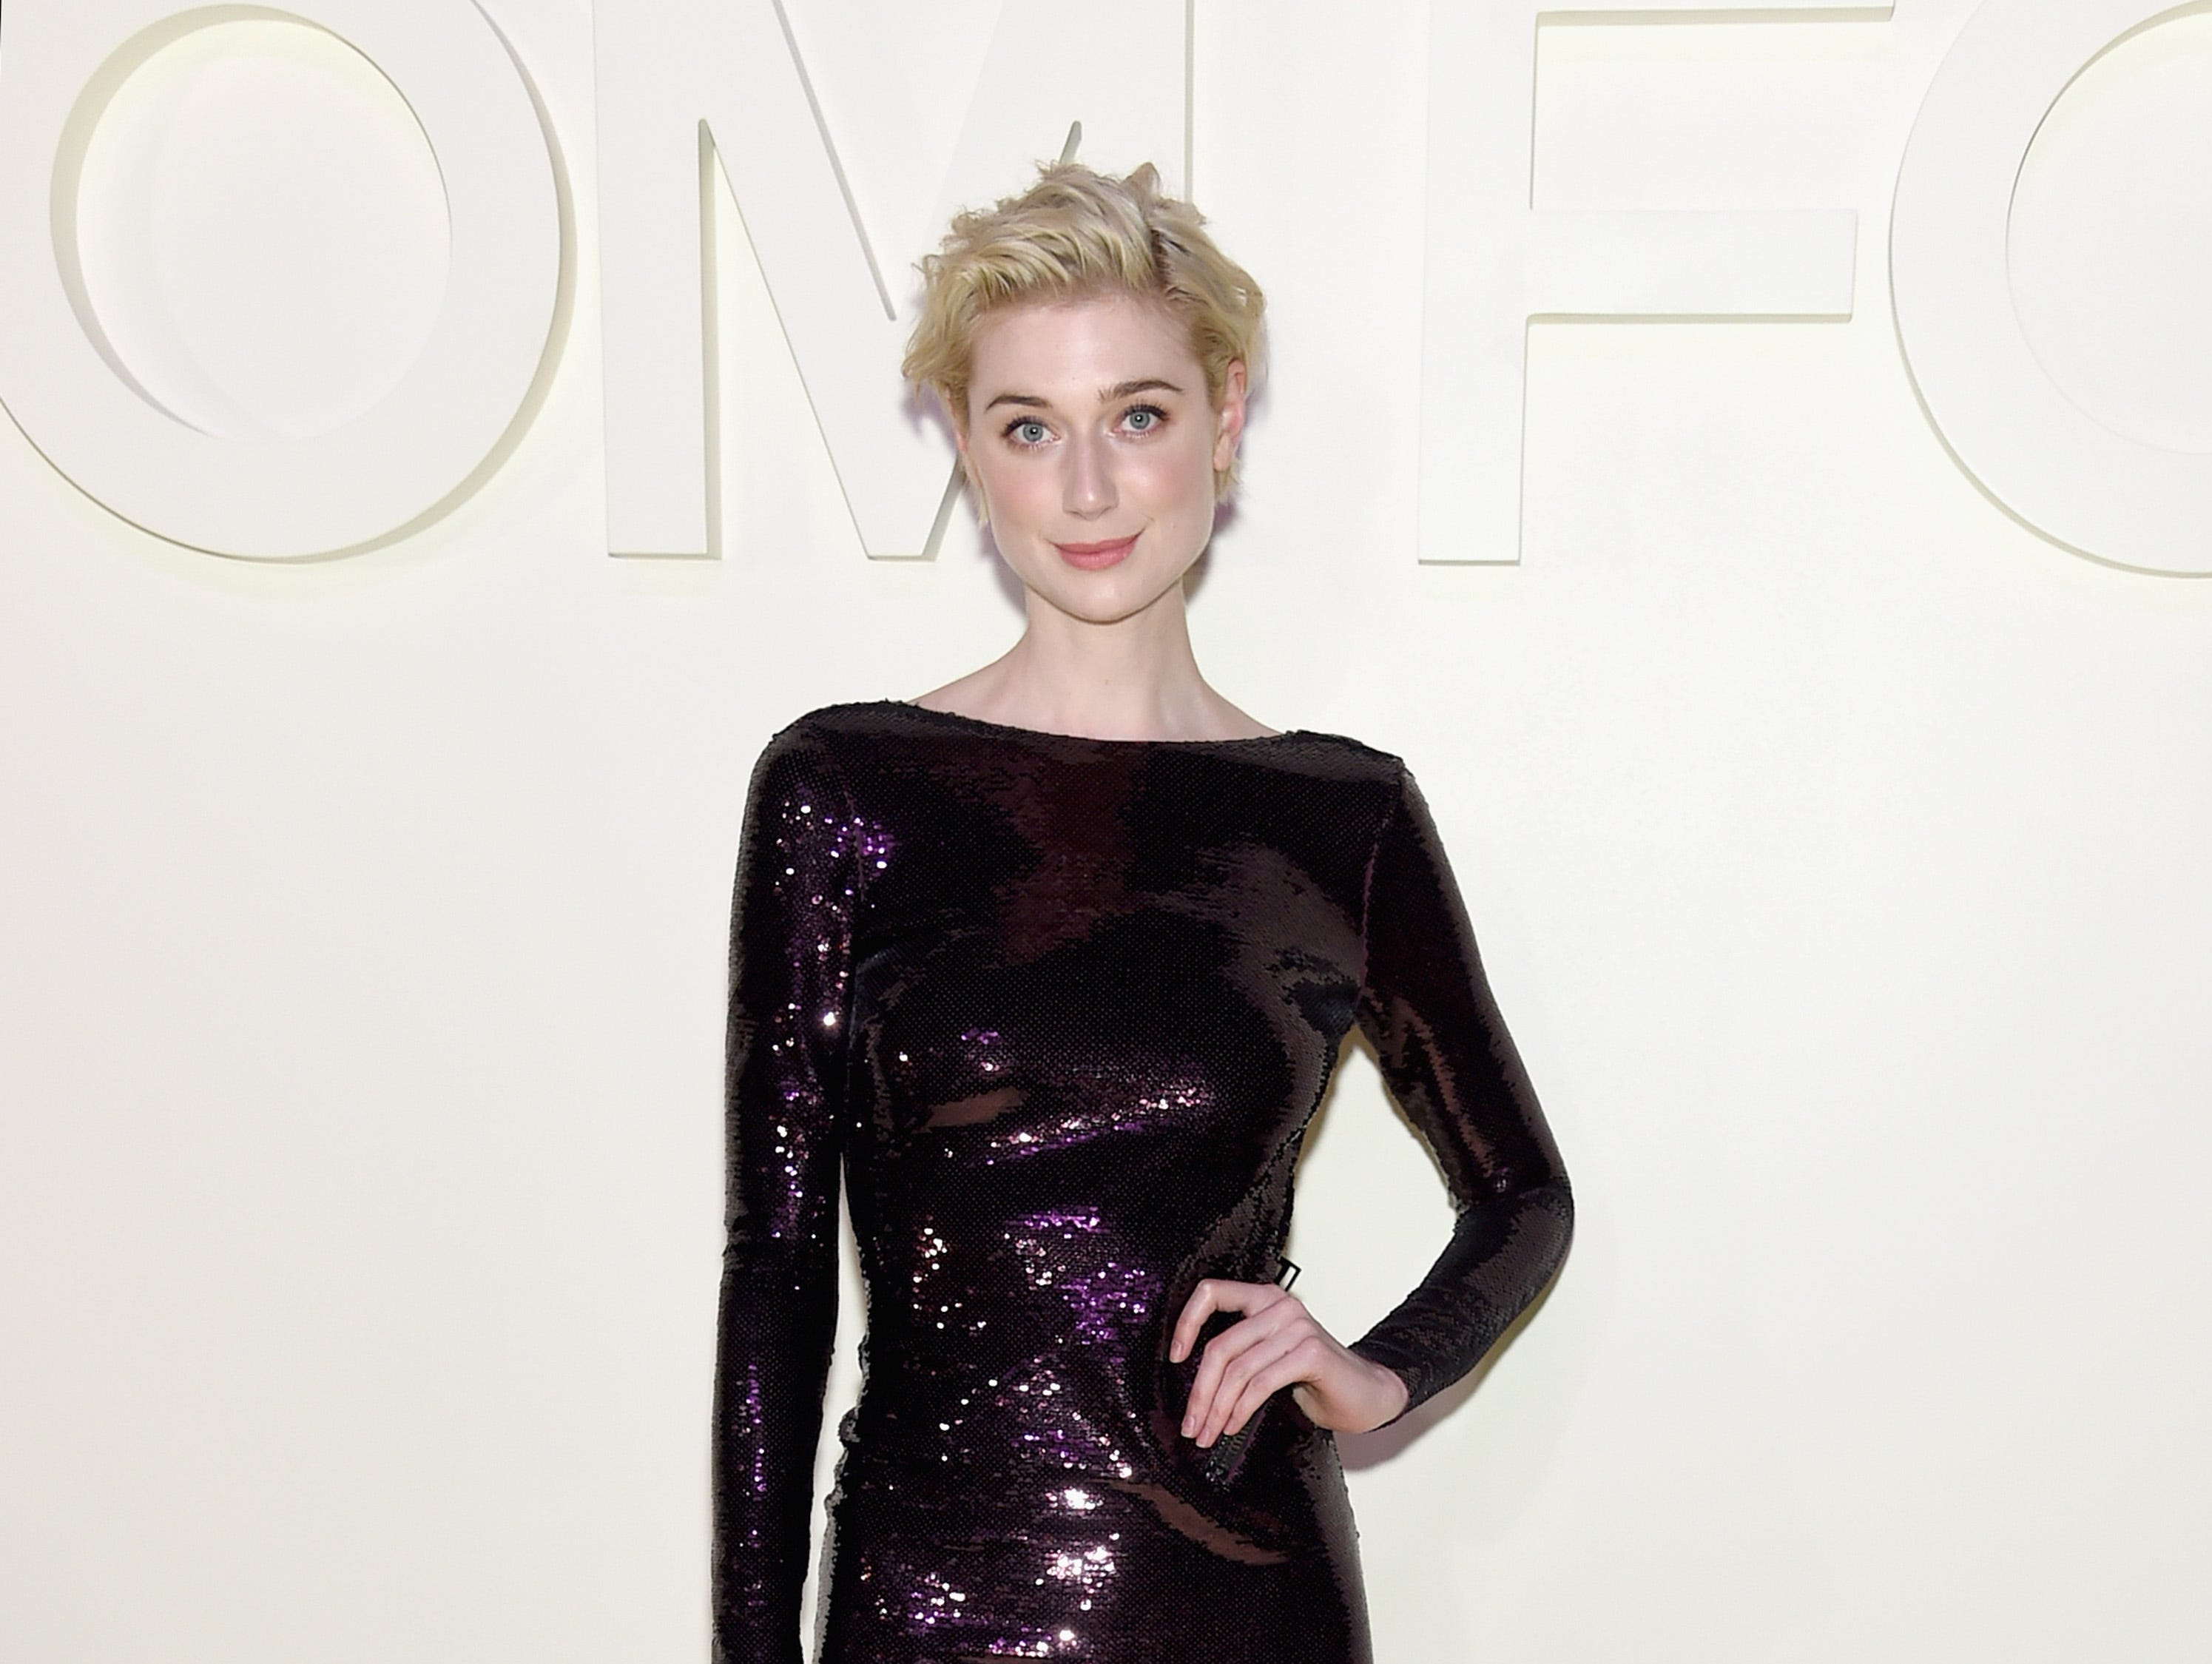 NEW YORK, NY - SEPTEMBER 05:  Elizabeth Debicki attends the Tom Ford fashion show during New York Fashion Week at Park Avenue Armory on September 5, 2018 in New York City.  (Photo by Jamie McCarthy/Getty Images) ORG XMIT: 775216222 ORIG FILE ID: 1027431410